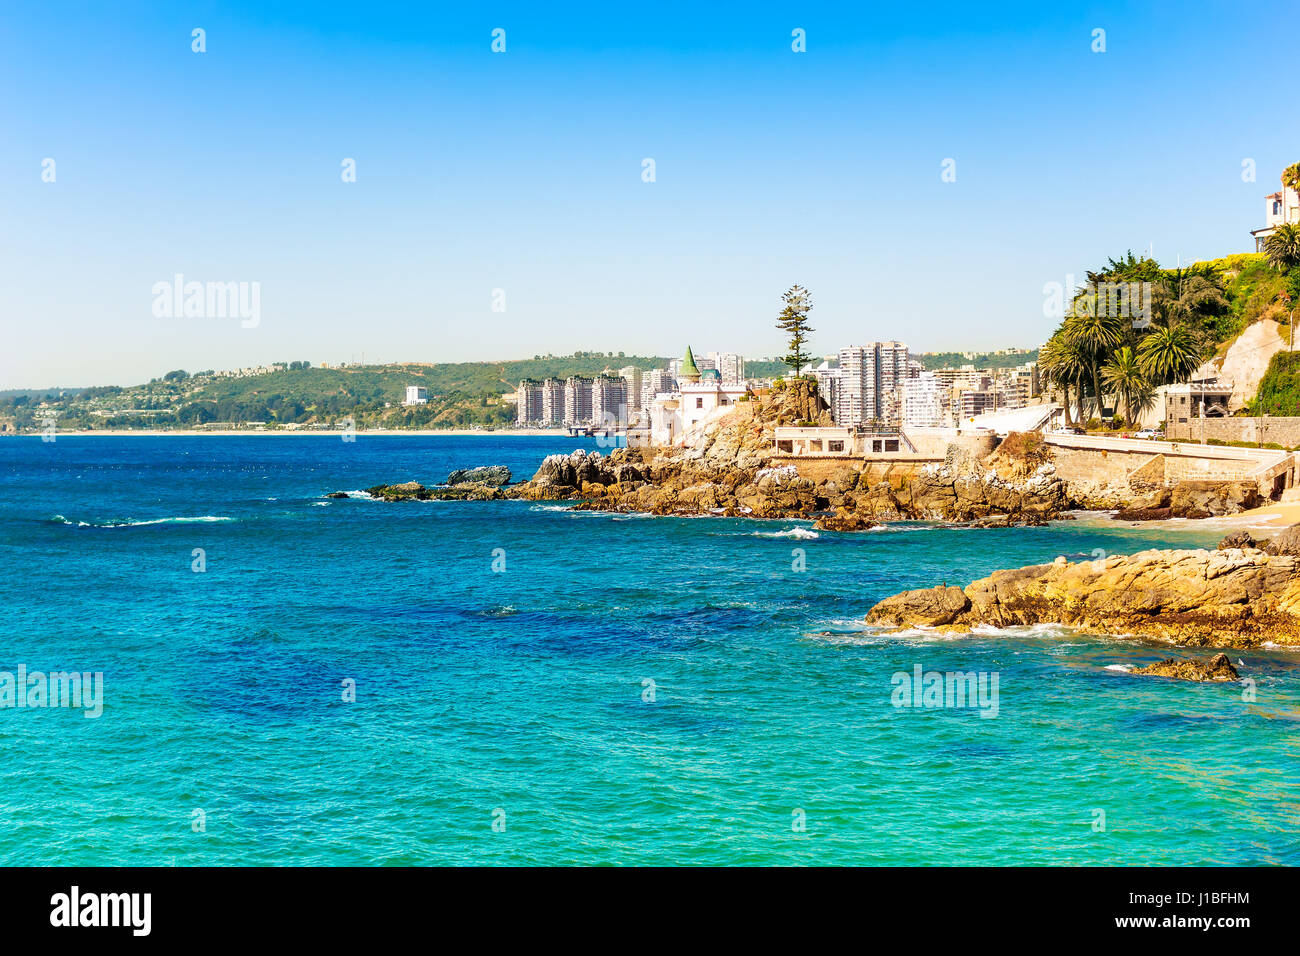 Seaside with bright blue water in Vina del Mar, Chile - Stock Image